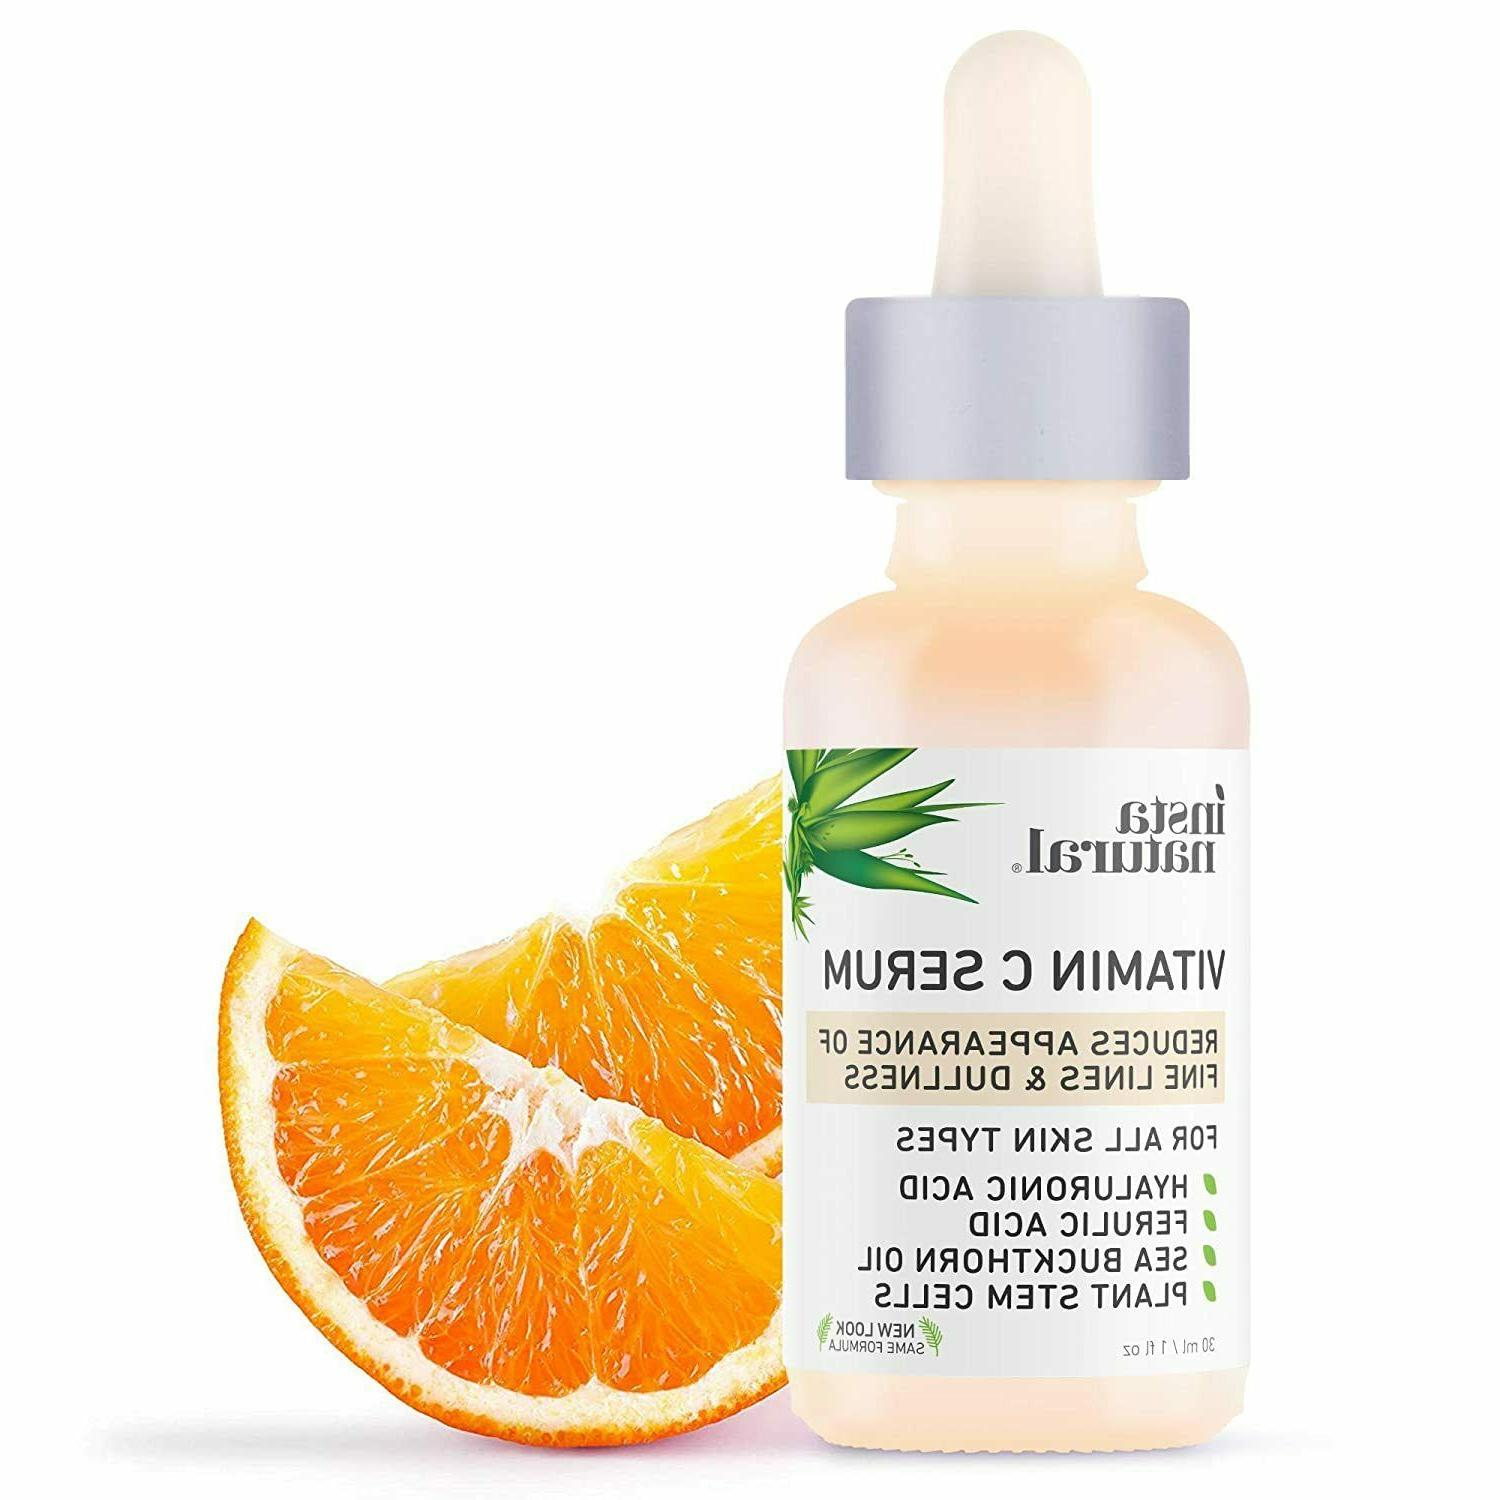 InstaNatural - Vitamin C Facial Serum - 1 fl. oz.